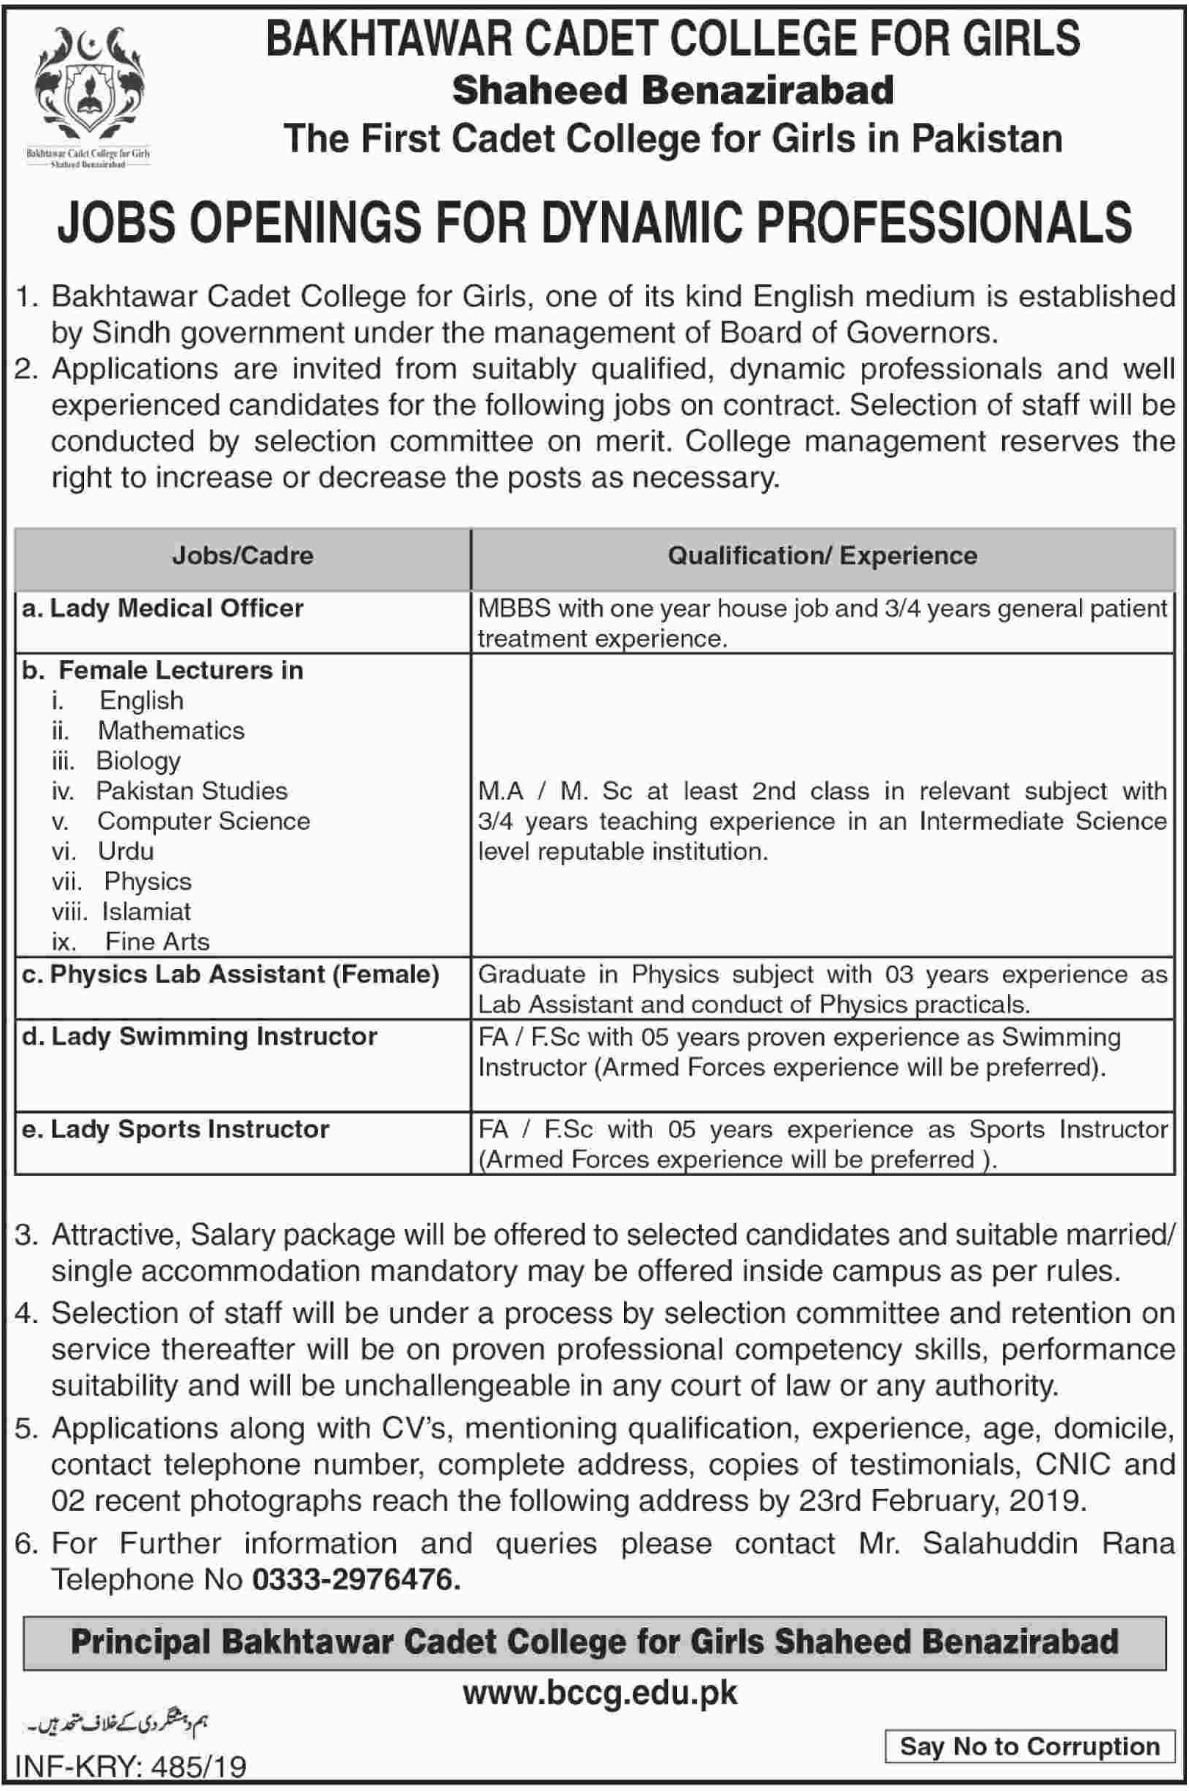 Bakhtawar Cadet College for Girls Jobs 2019 Shaheed Benazirabad